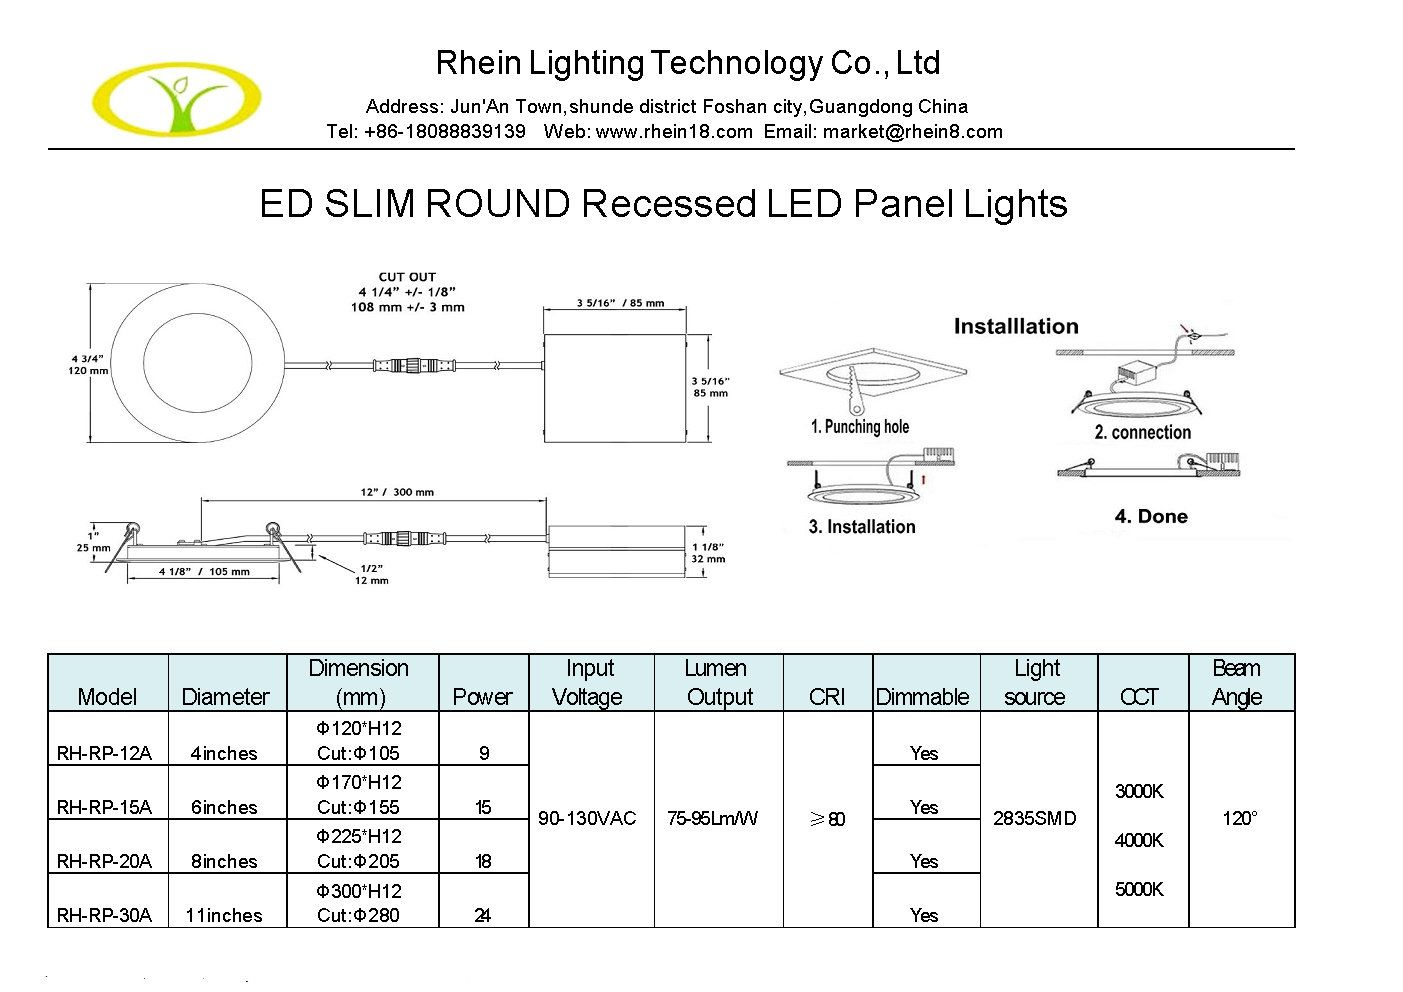 Etl Led Panel Light Manufacturer Market Rhein8 Com Led Panel Light Led Panel Led Strip Lighting